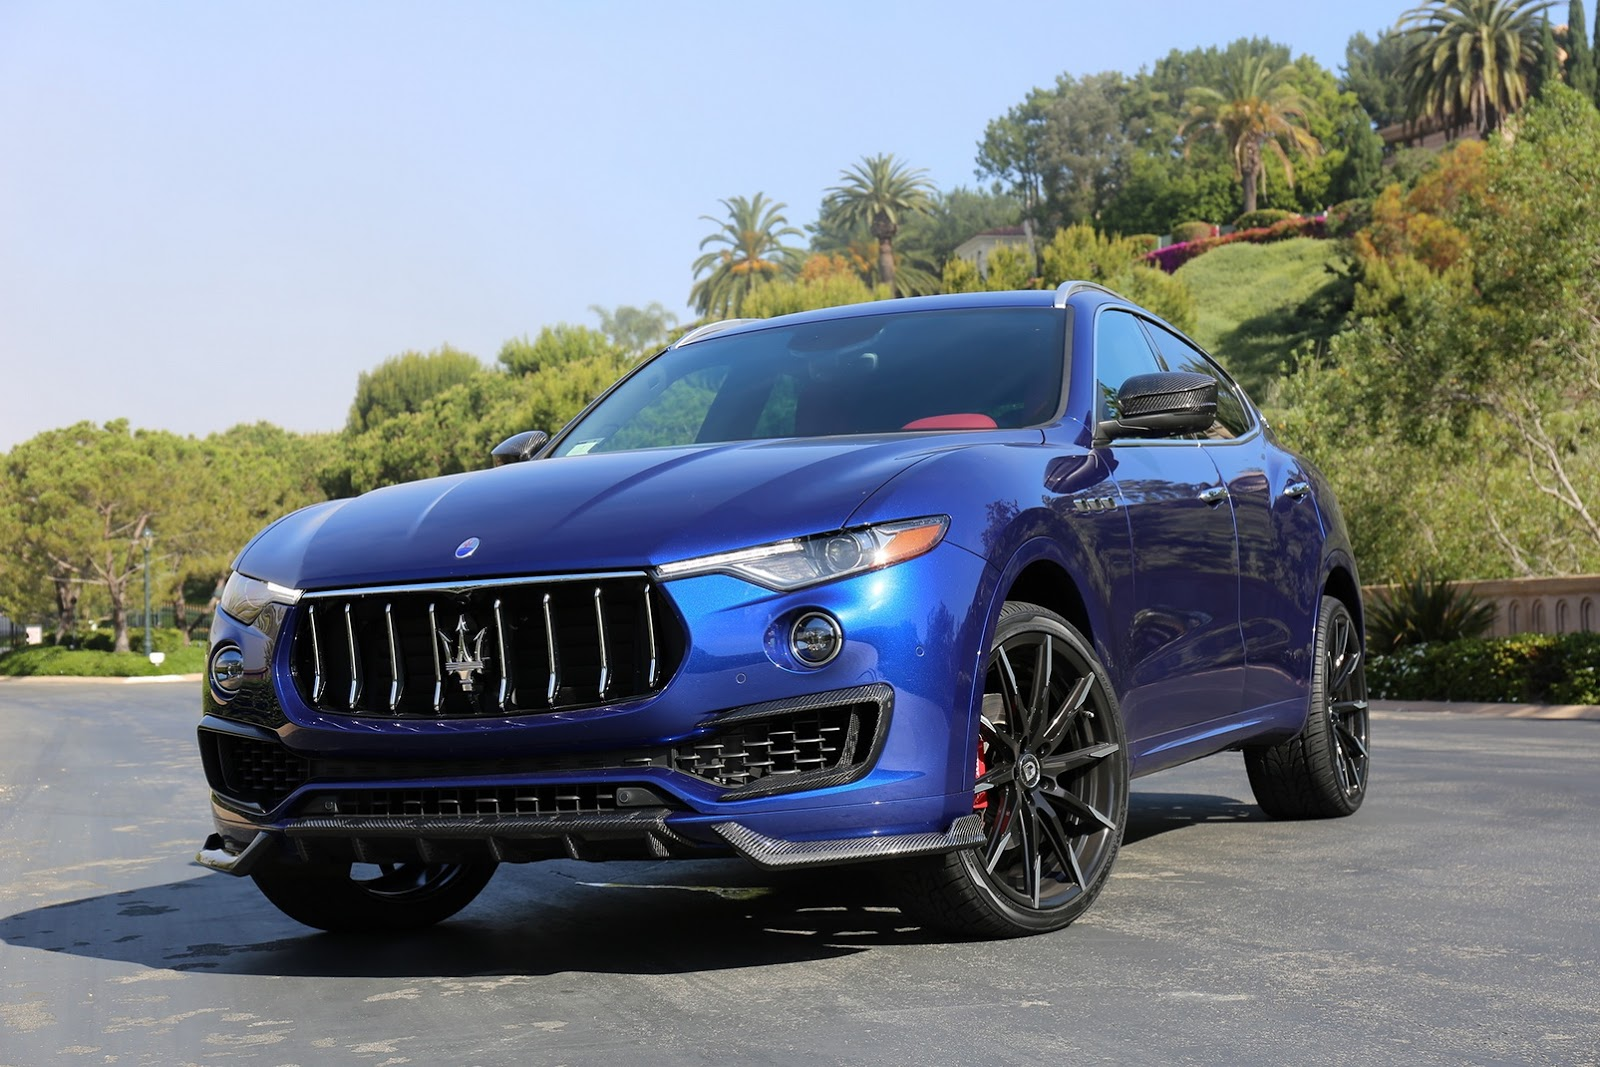 Maserati Levante by Larte Design (4)